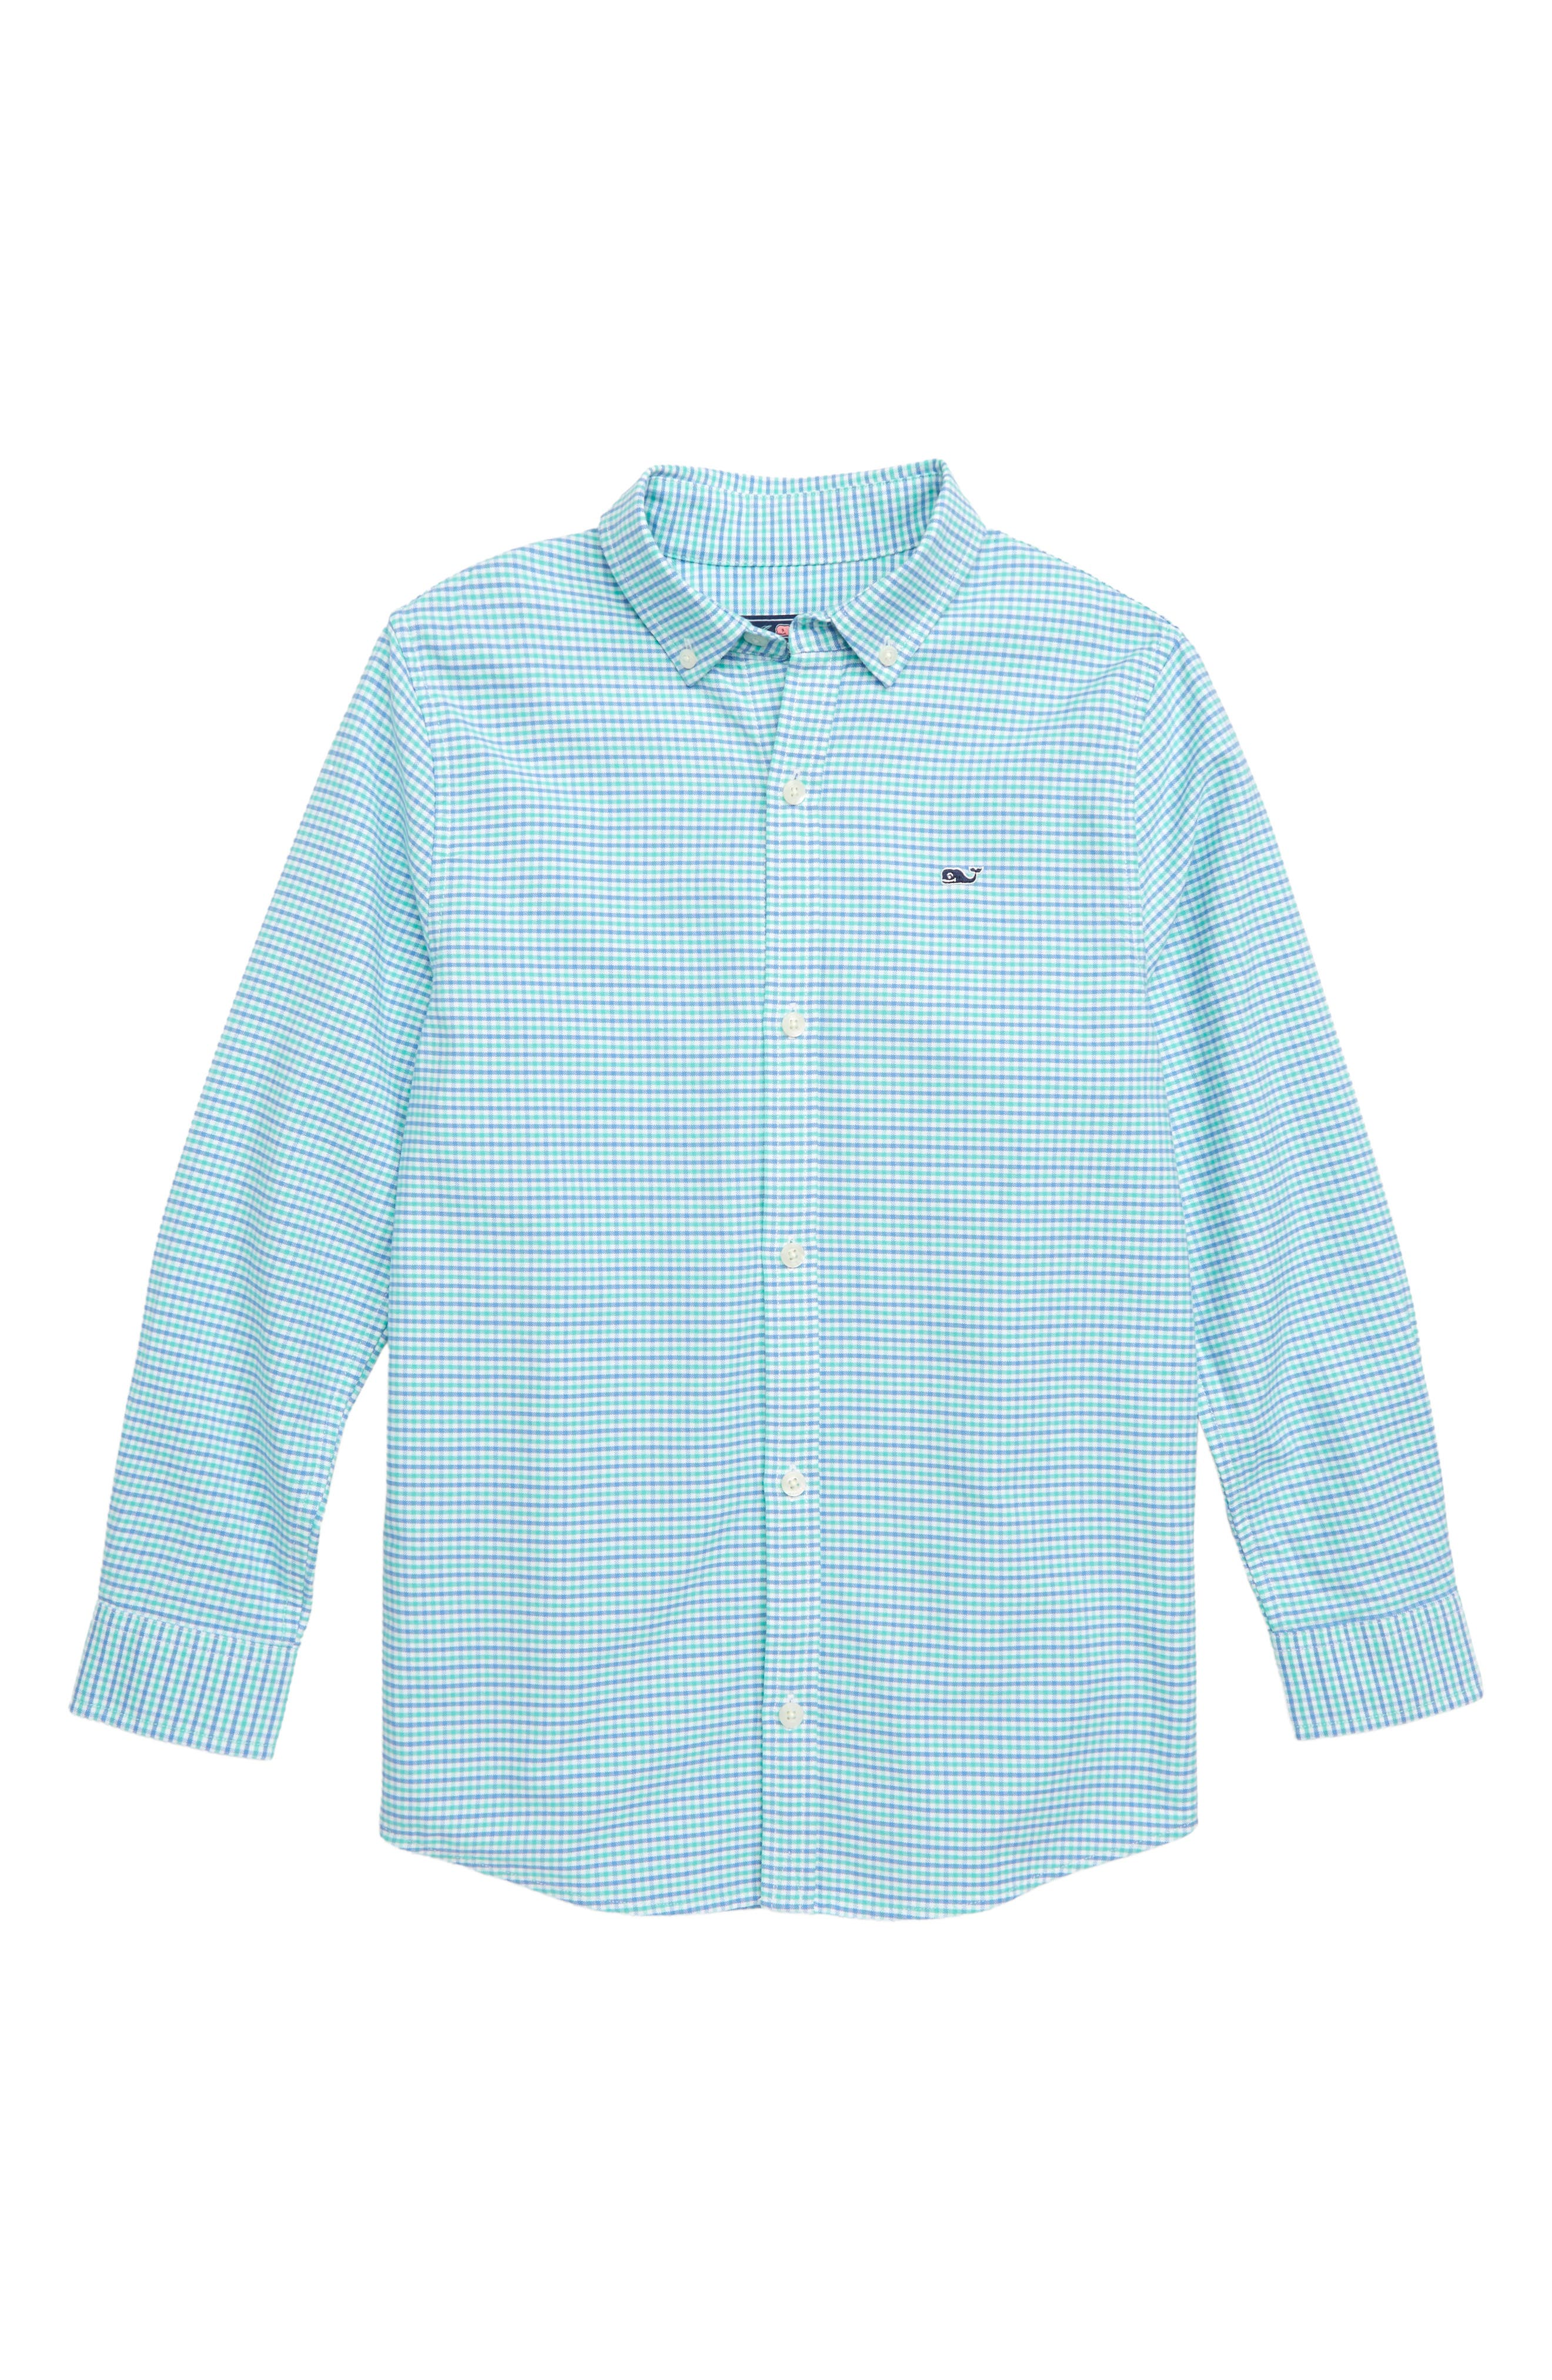 Bell Haven Plaid Oxford Shirt,                             Main thumbnail 1, color,                             CAPRI BLUE